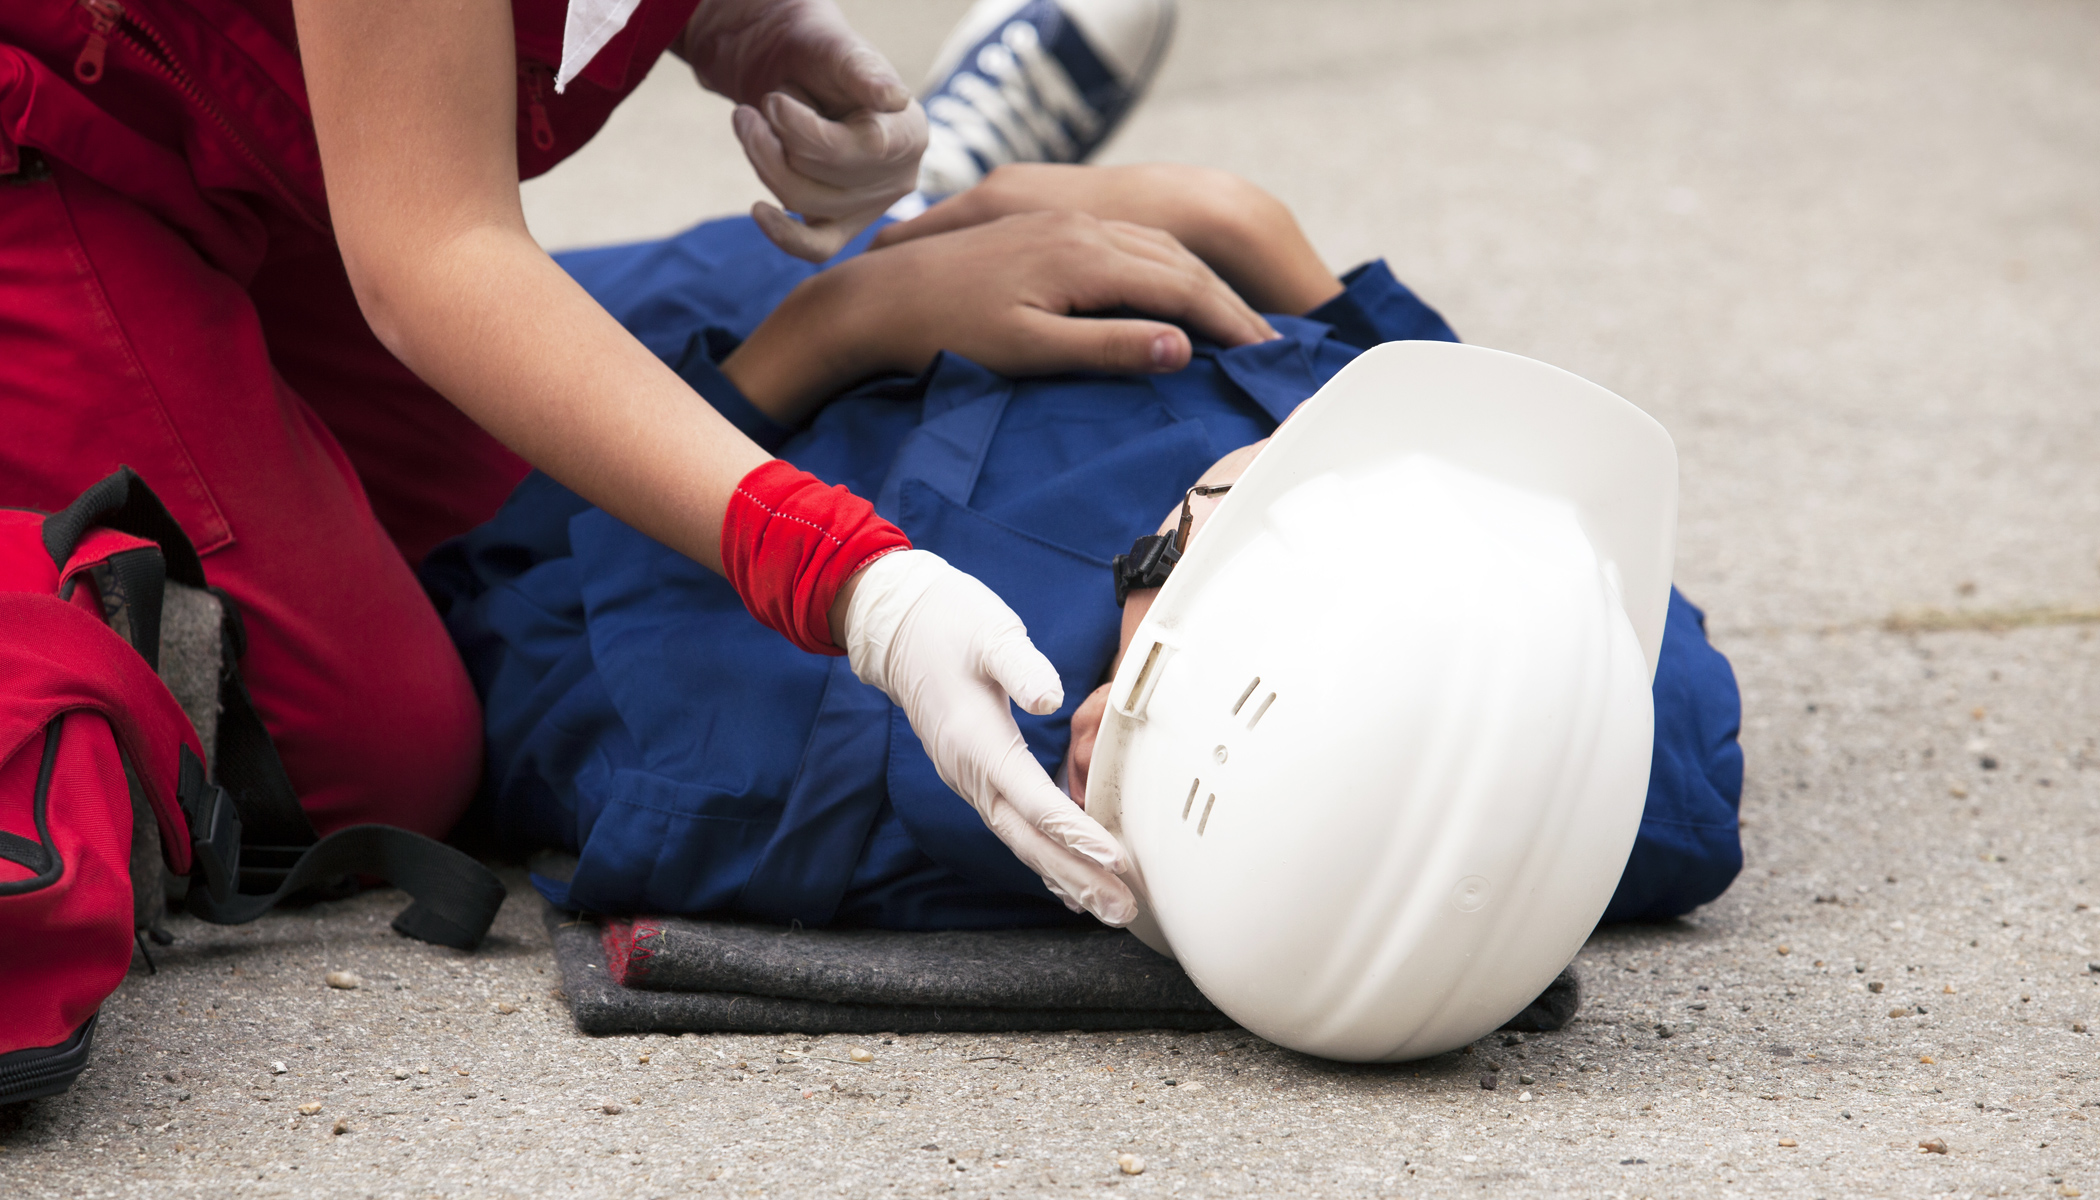 Low cost on site cpr courses ma ri ct aed training on site certified rescue courses north dartmouth ma low cost cpr classes affordable on xflitez Images